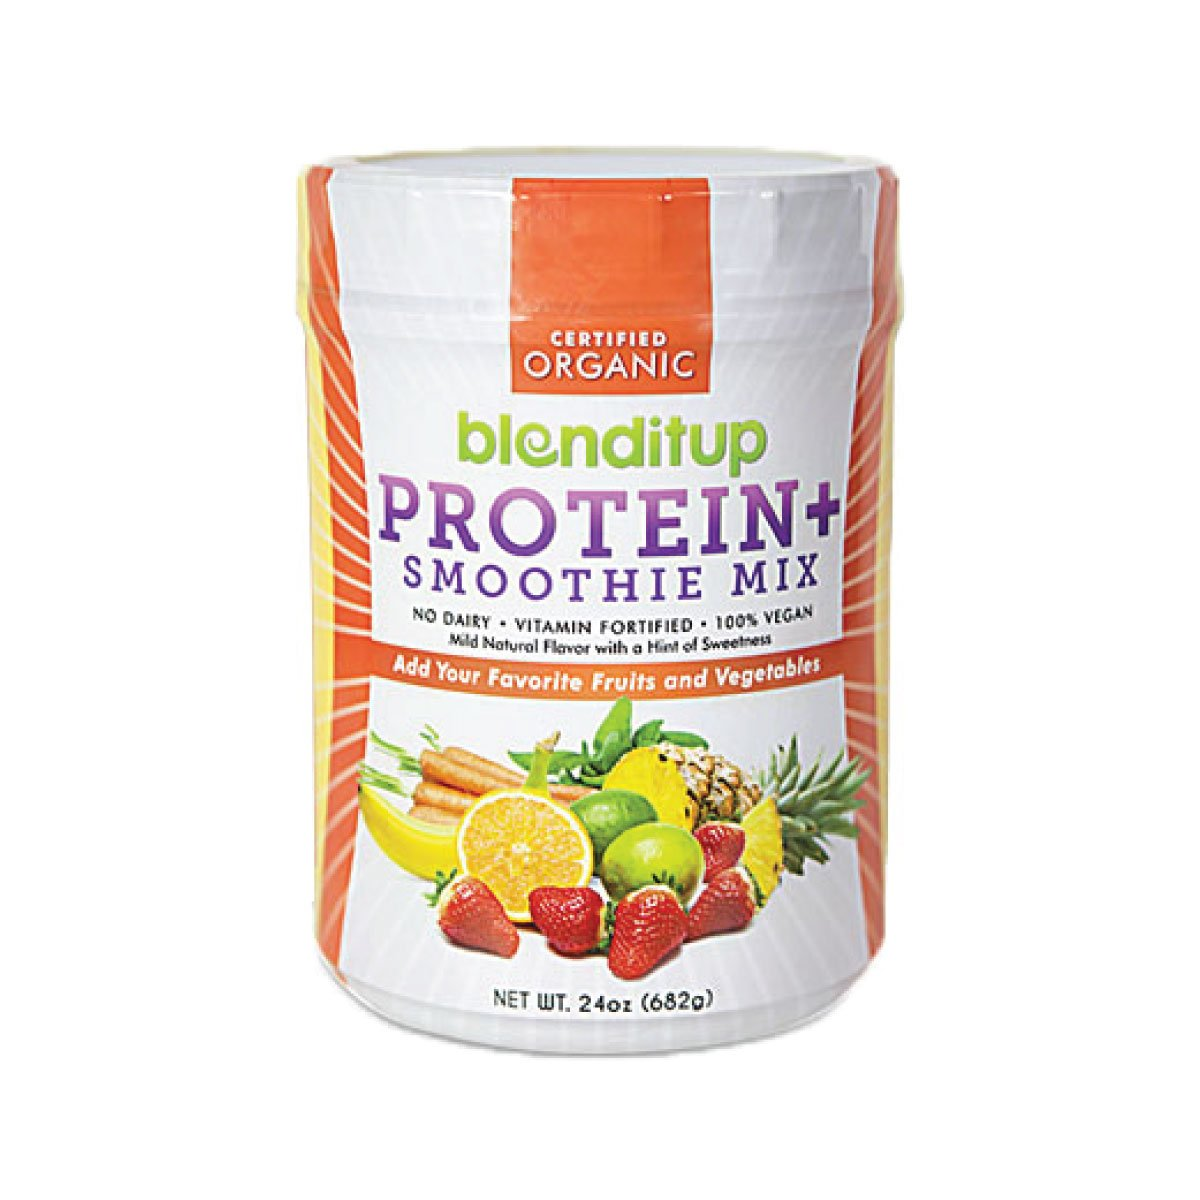 Organic Vegan Protein Powder Unflavored Smoothie Mix Gluten Free, Dairy Free, GMO Free With Soy Protein Isolate - Nutritional Supplements - Kosher Food - No Eggs - 24 Oz by BlendItUp